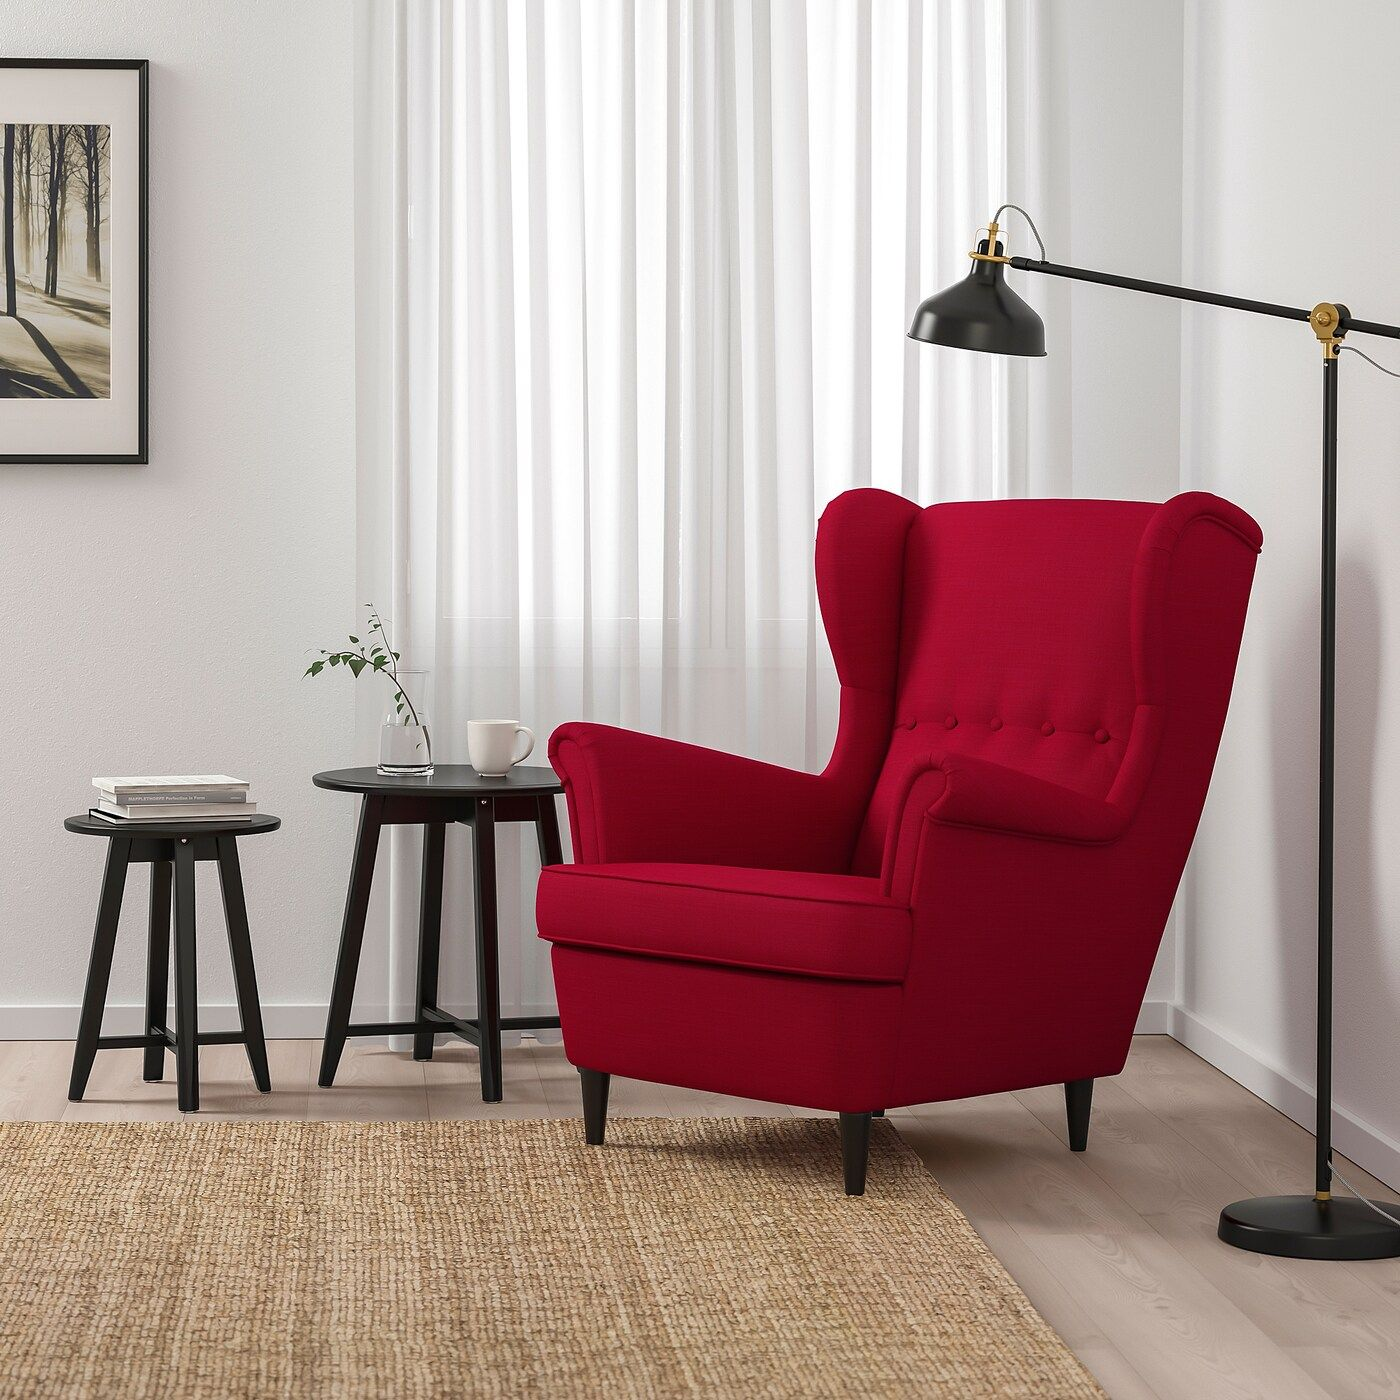 Ikea S Cyber Monday Sale Is A Must If You Re Looking To Revamp Your Home In 2020 Home Decor Ikea Ikea Strandmon